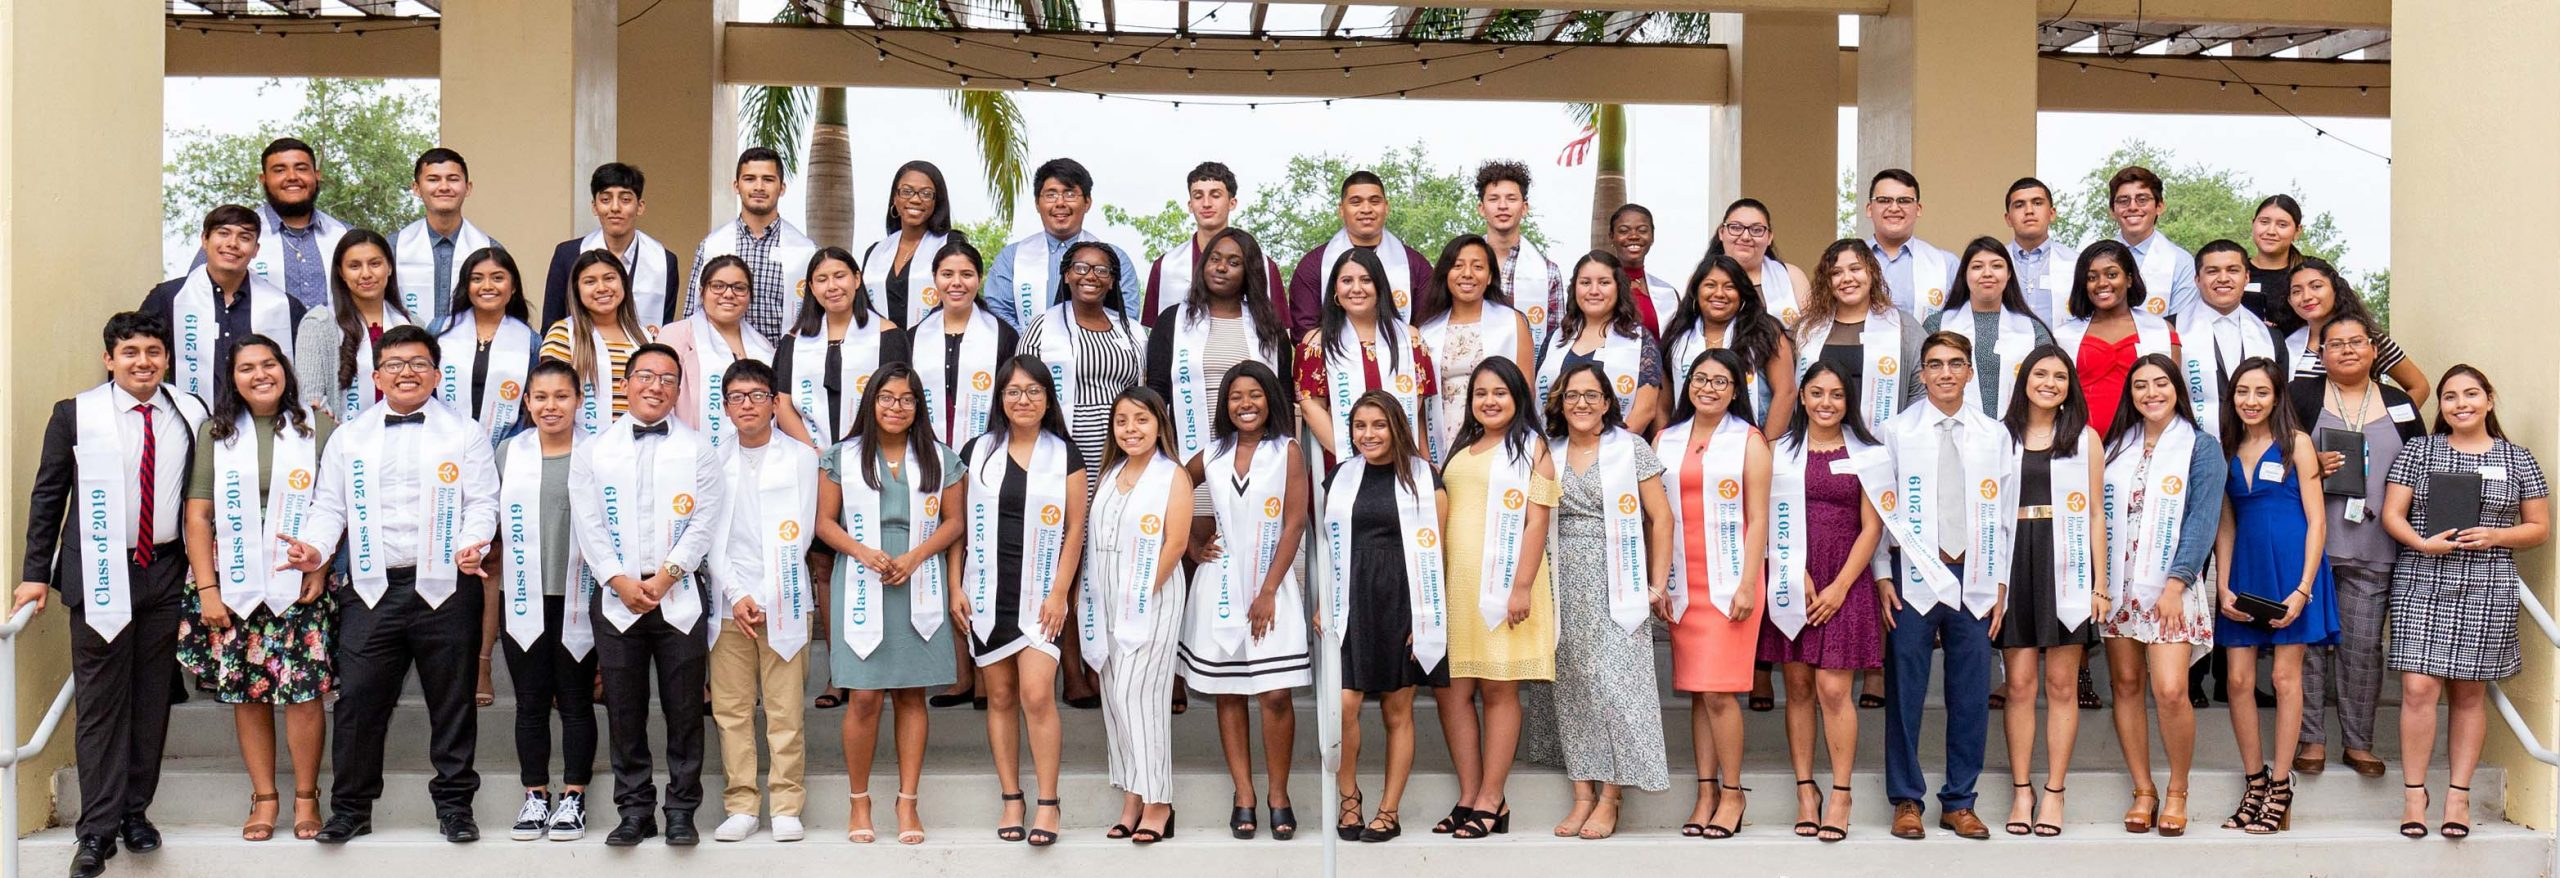 the-immokalee-foundation-recently-celebrated-88-graduates